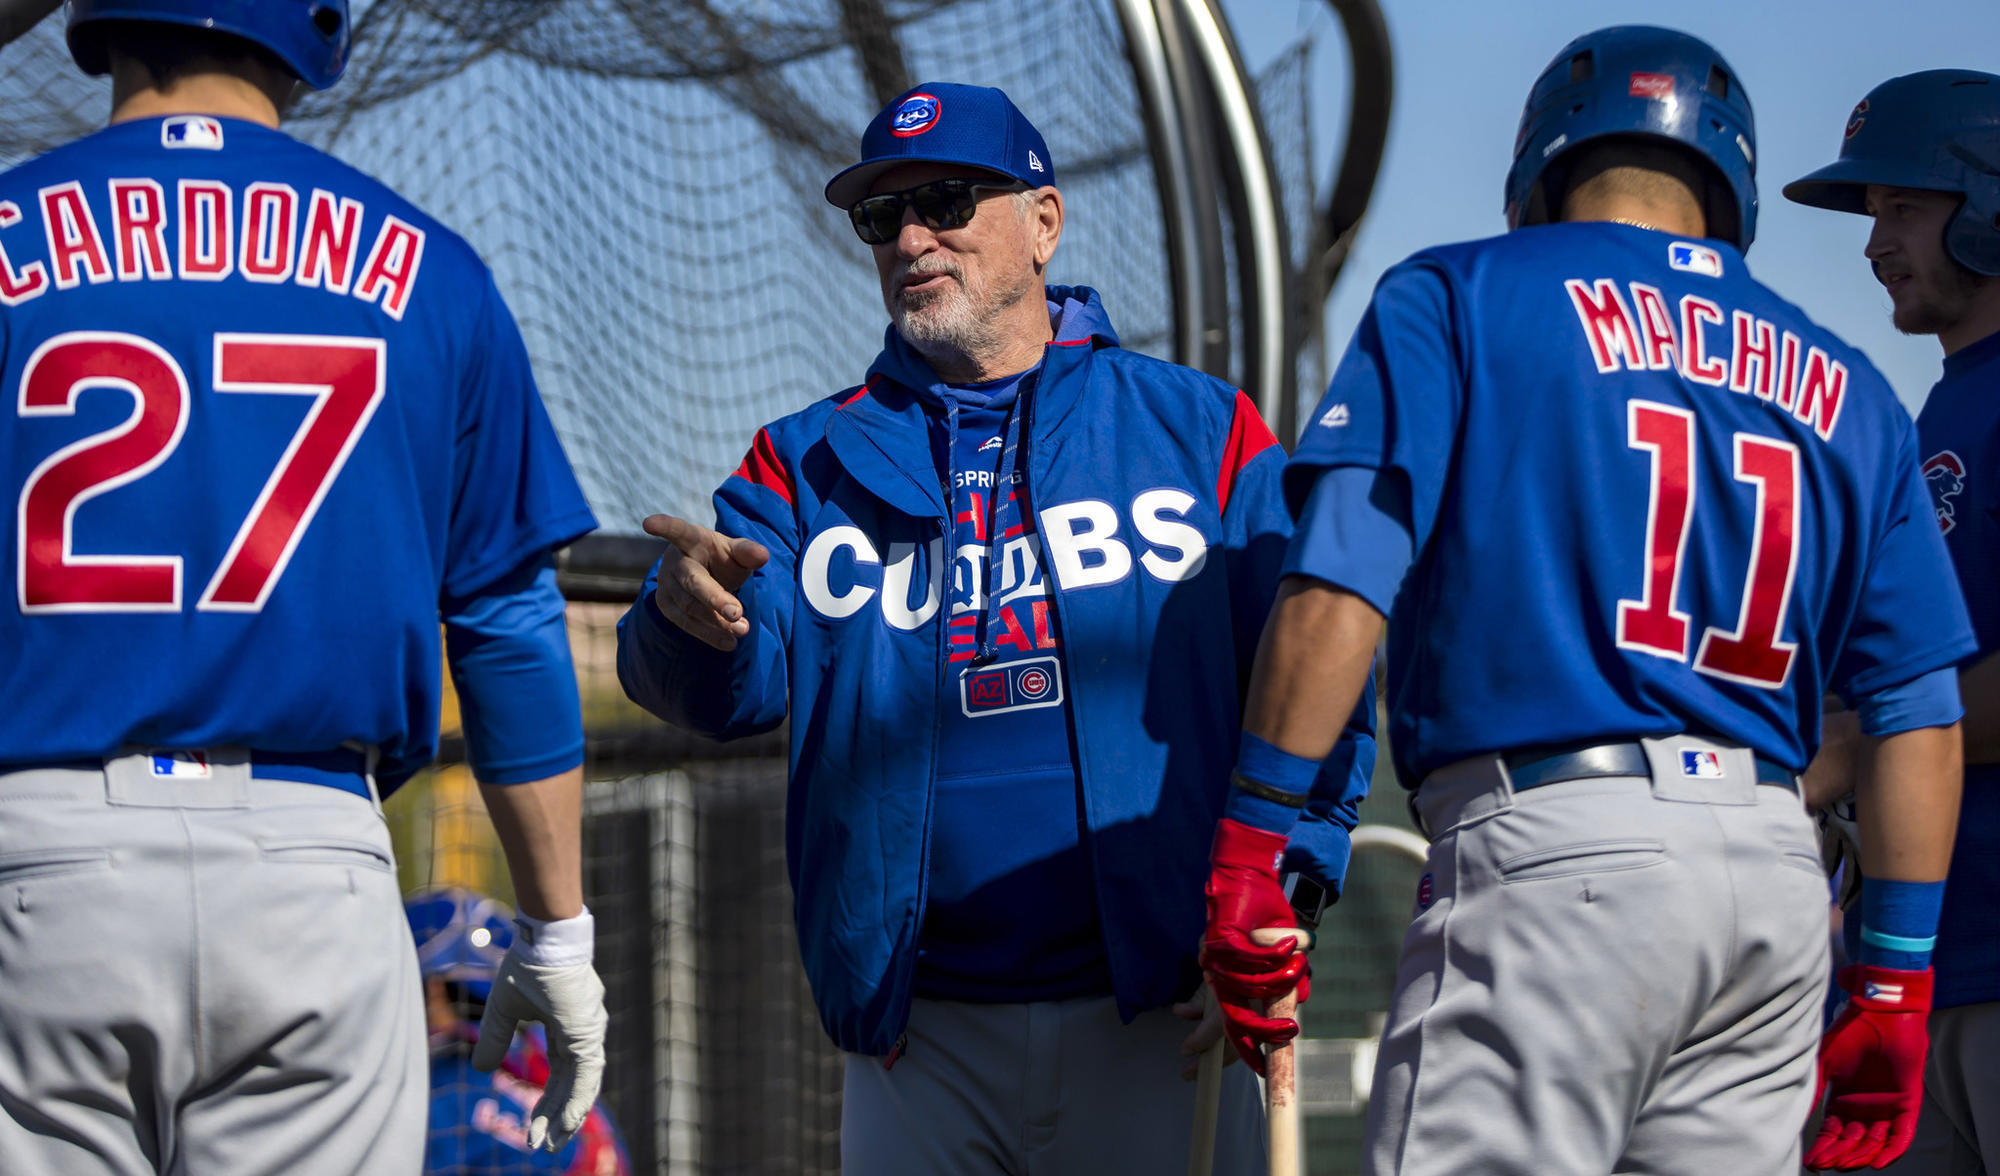 69def952 For Cubs' Joe Maddon, this looks like a World Series-or-bust season ...